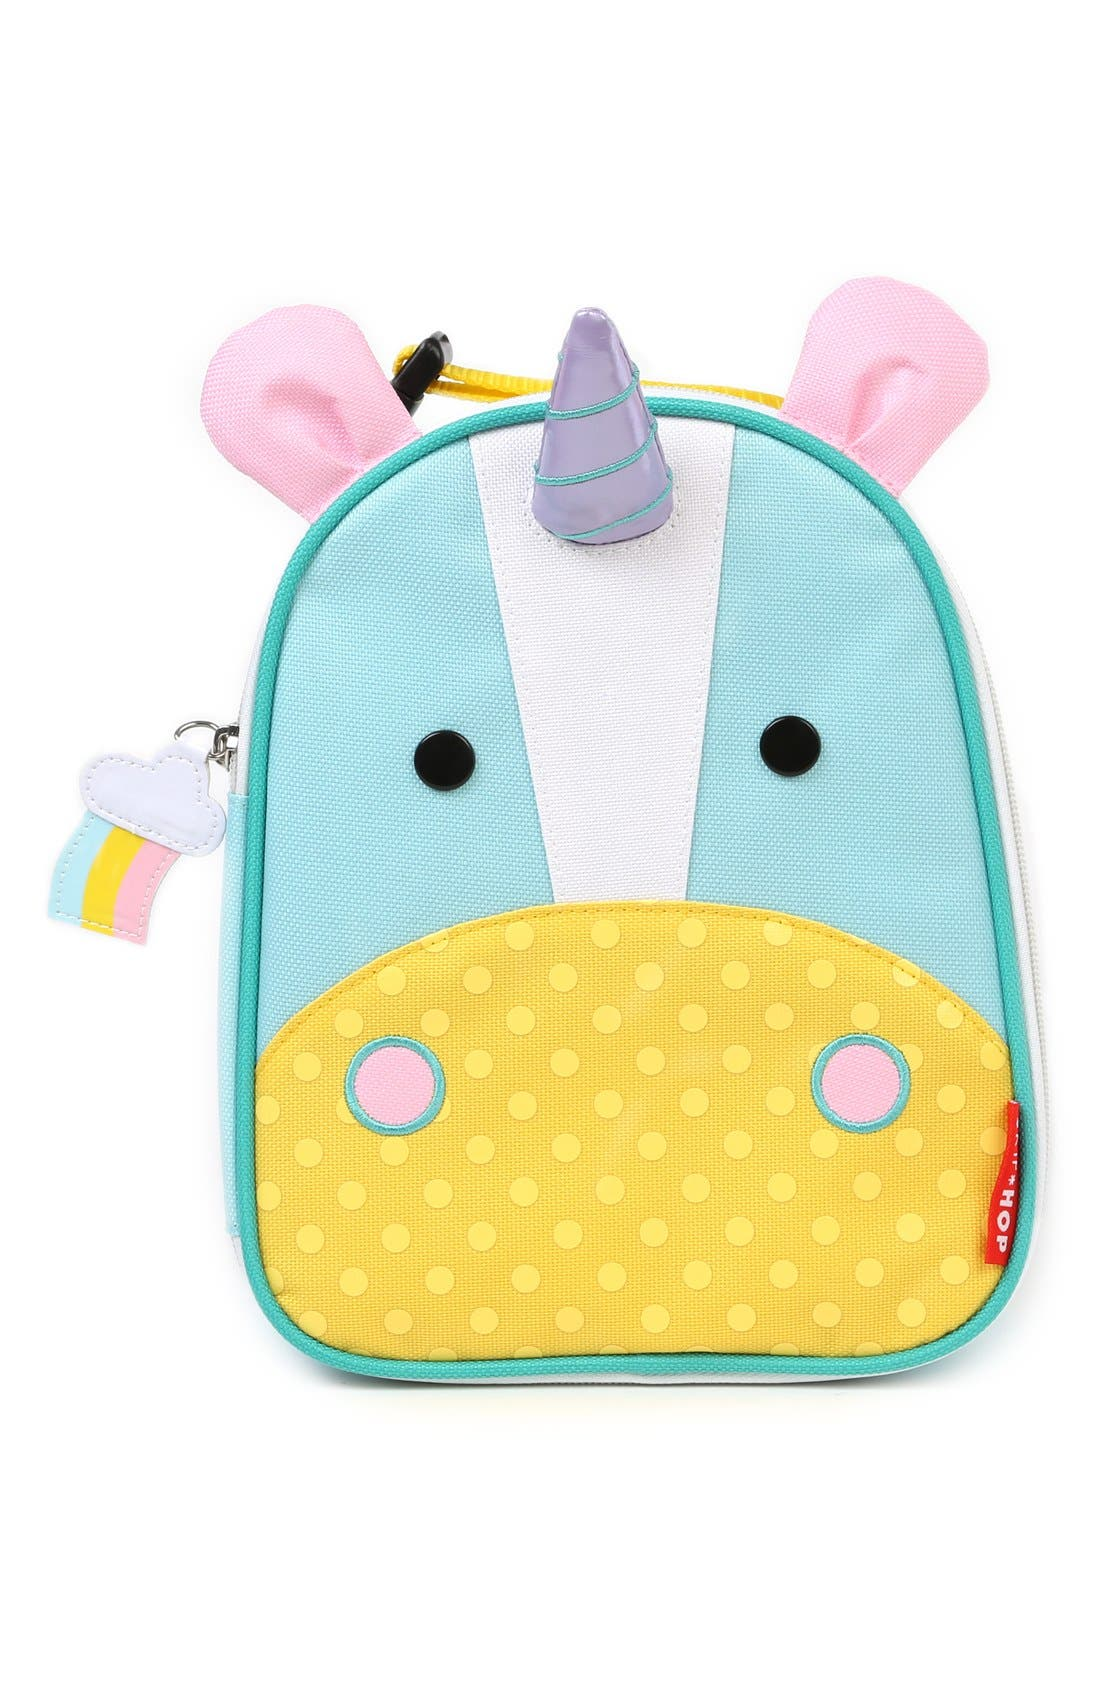 'Zoo Lunchie - Unicorn' Insulated Lunch Bag,                             Main thumbnail 1, color,                             UNICORN